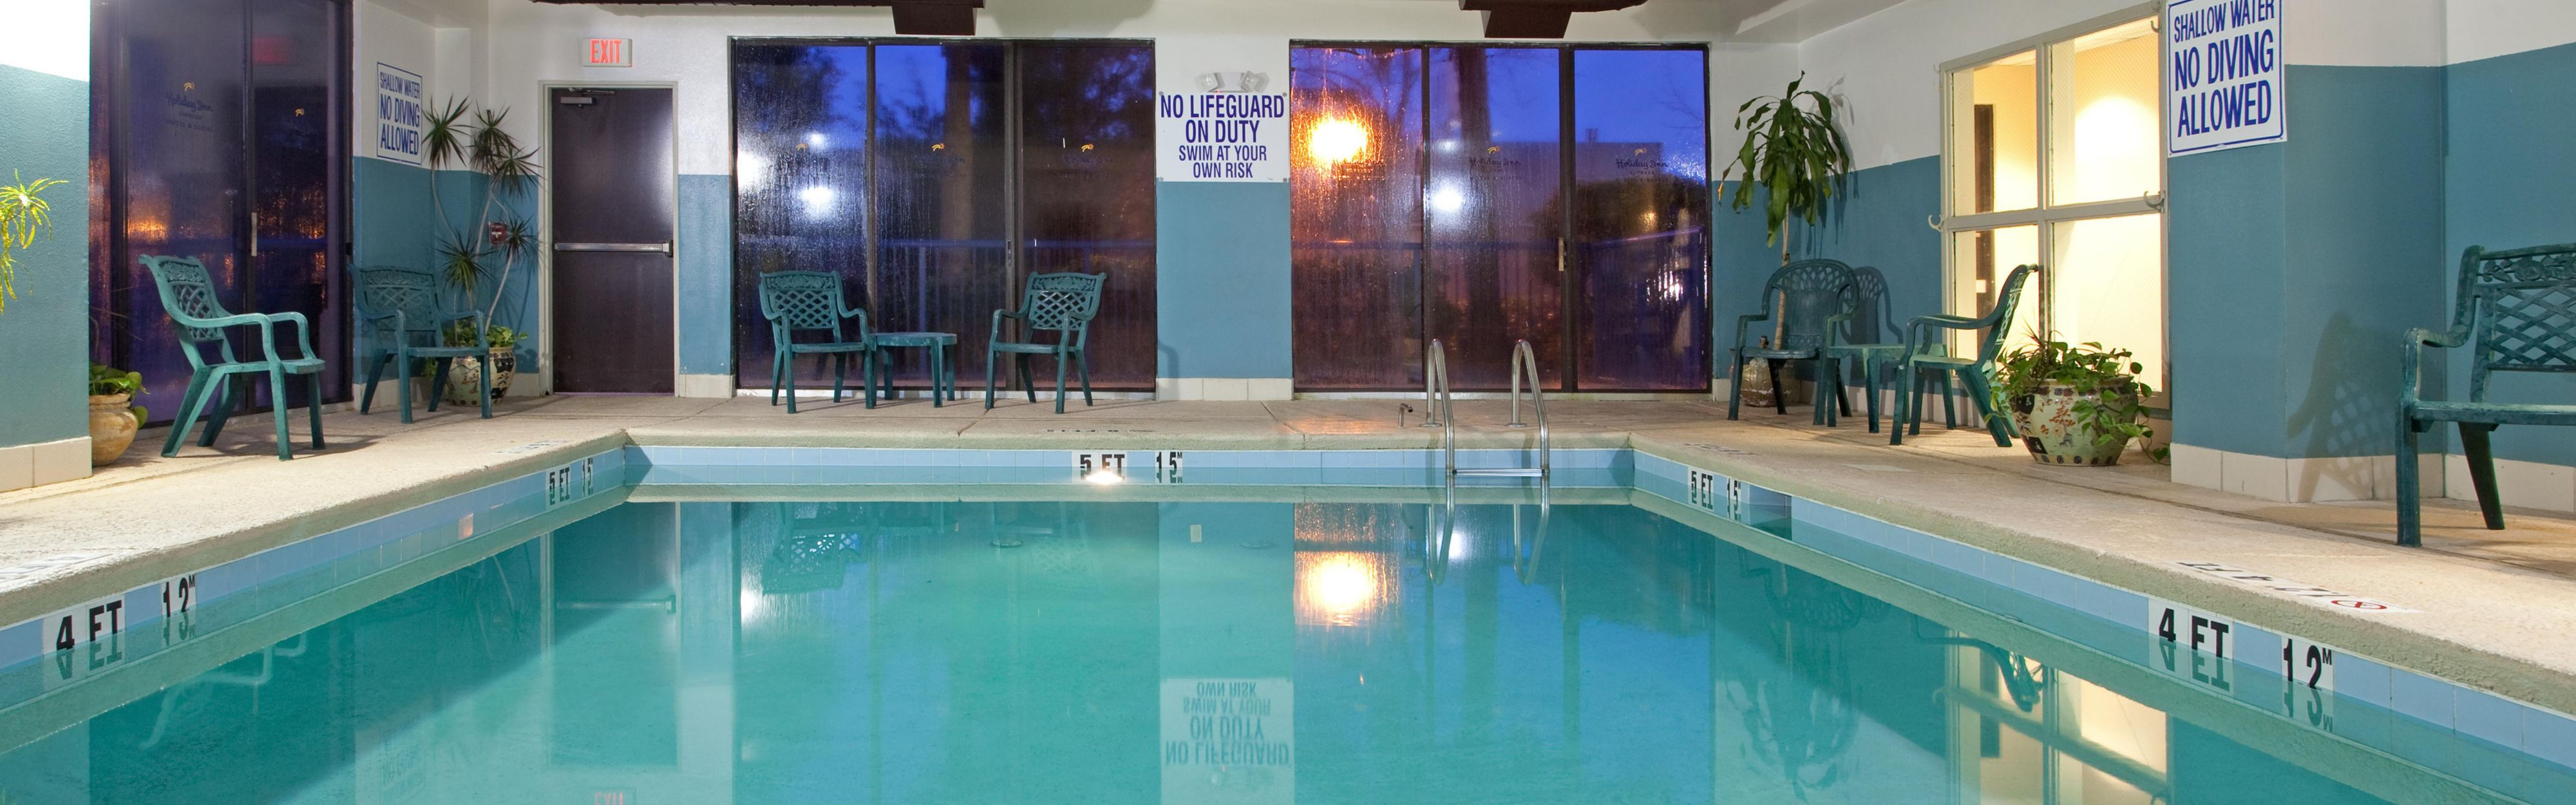 Holiday Inn Express Suites Murrell S Inlet Myrtle Beach